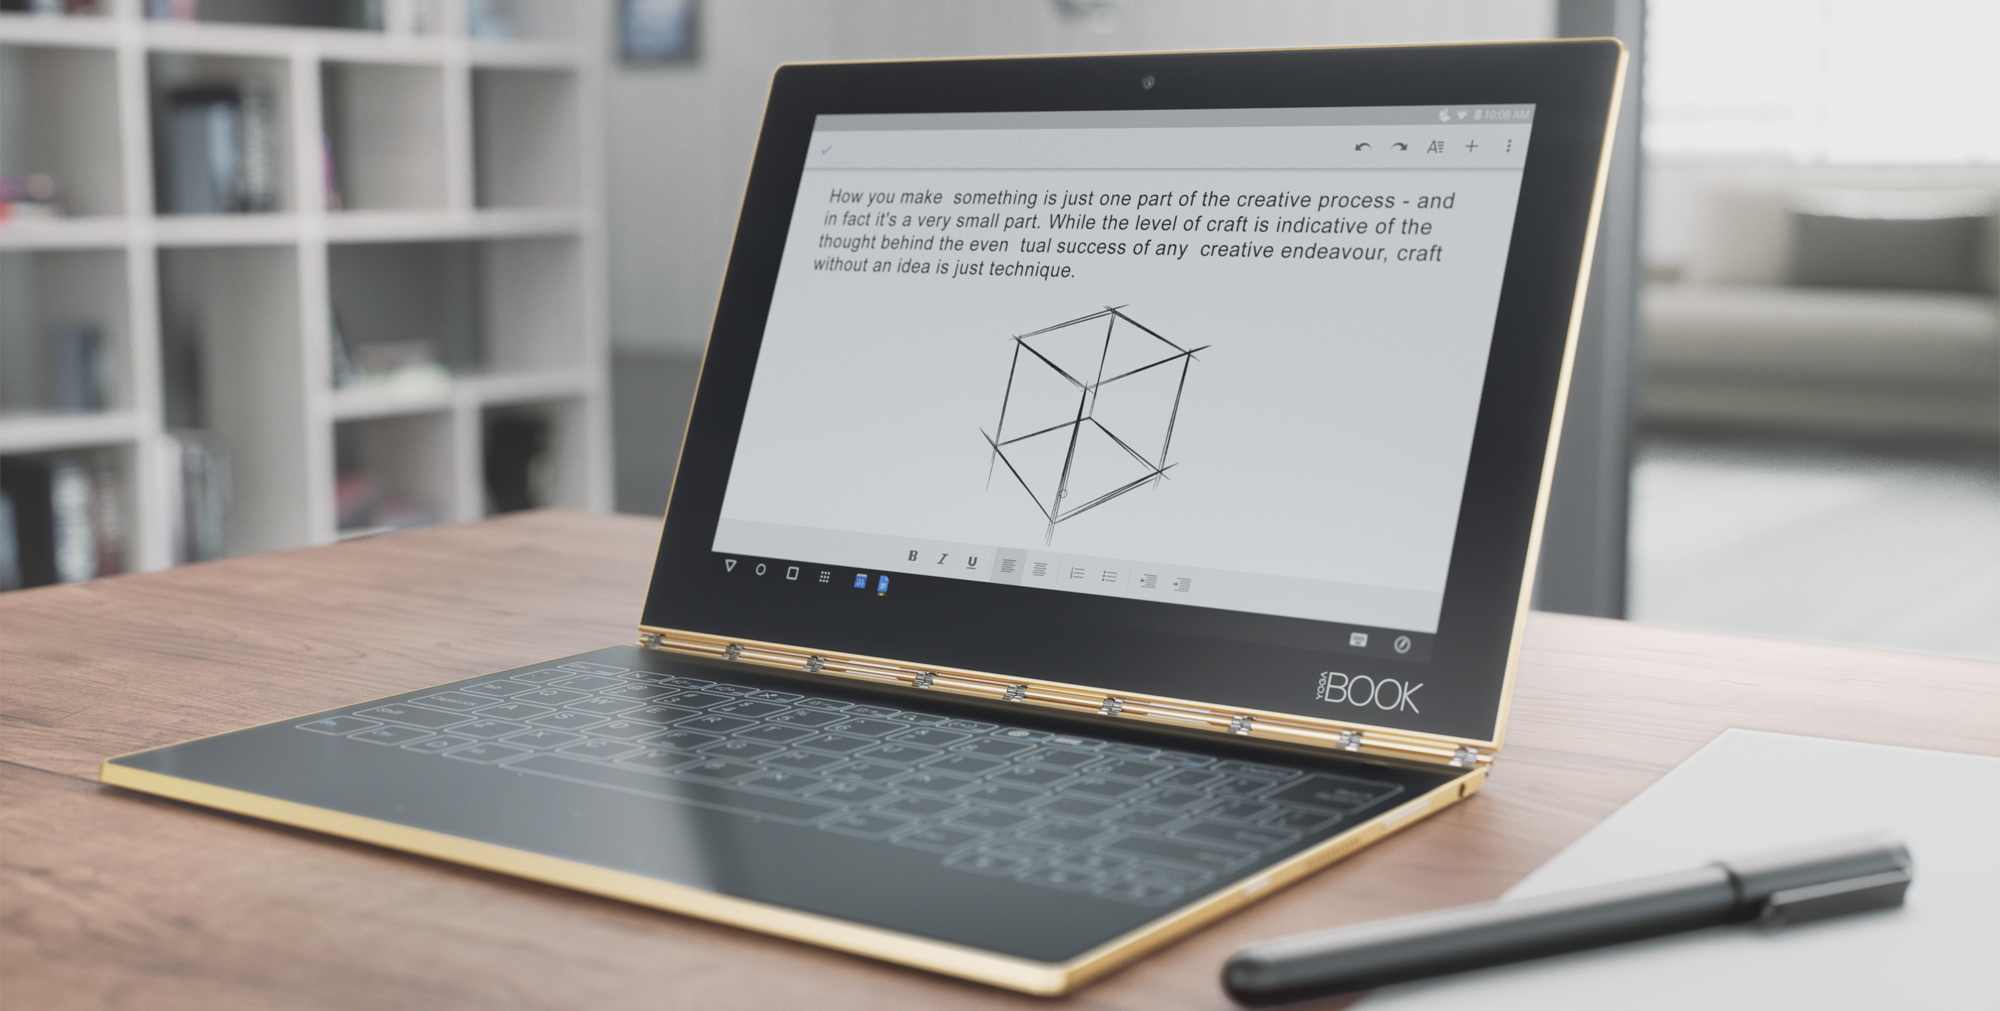 Lenovo Introduces The Yoga Book An Android 2 In 1 With A Unique Keyboard And Slim Design Video 9to5google